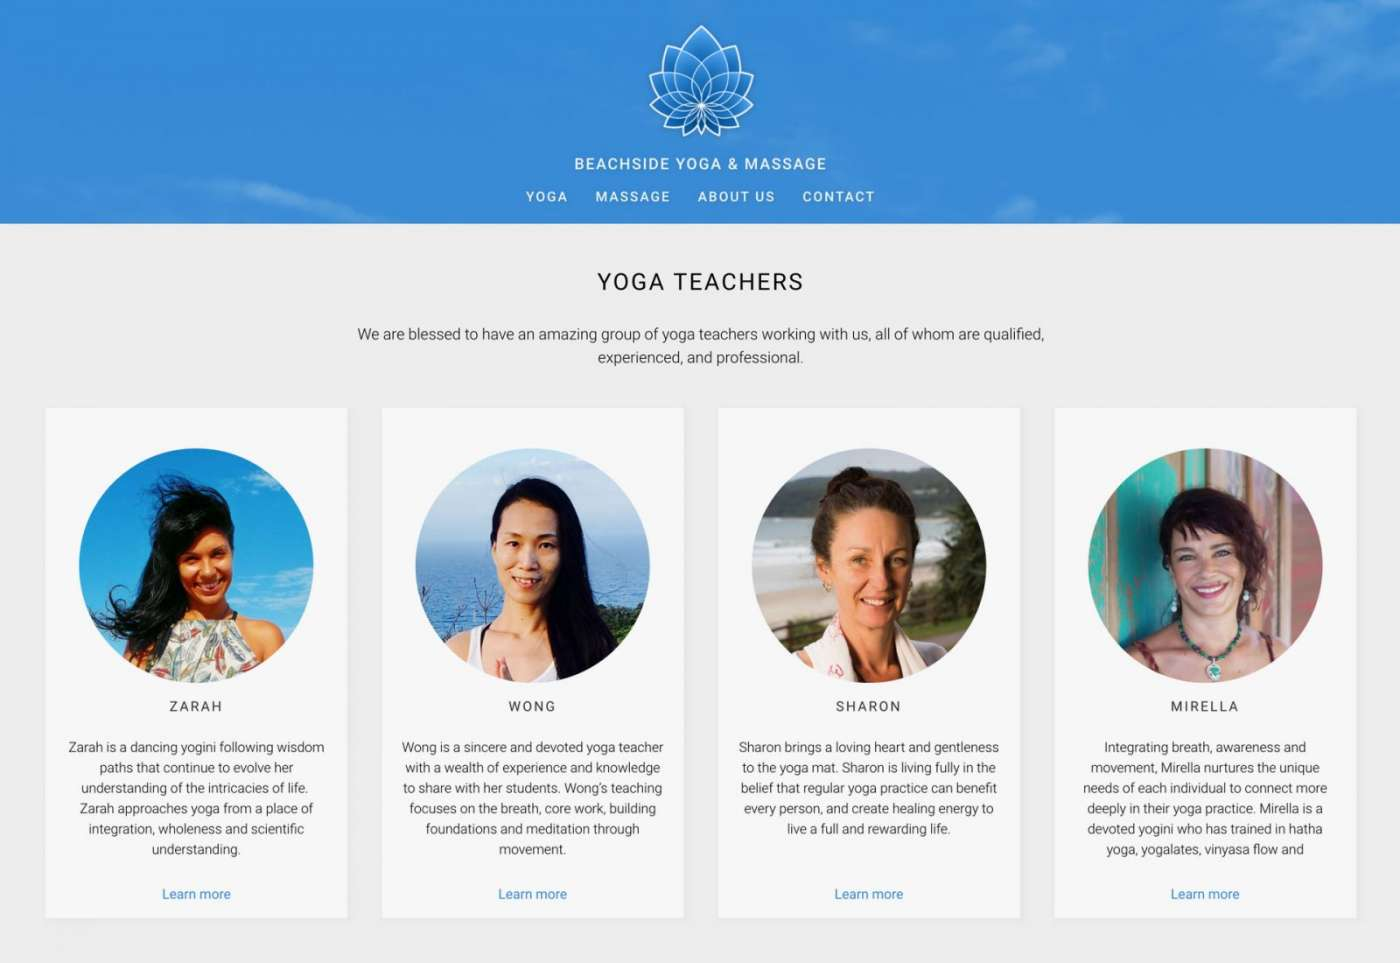 Web design for Beachside Yoga & Massage yoga teachers page desktop view.